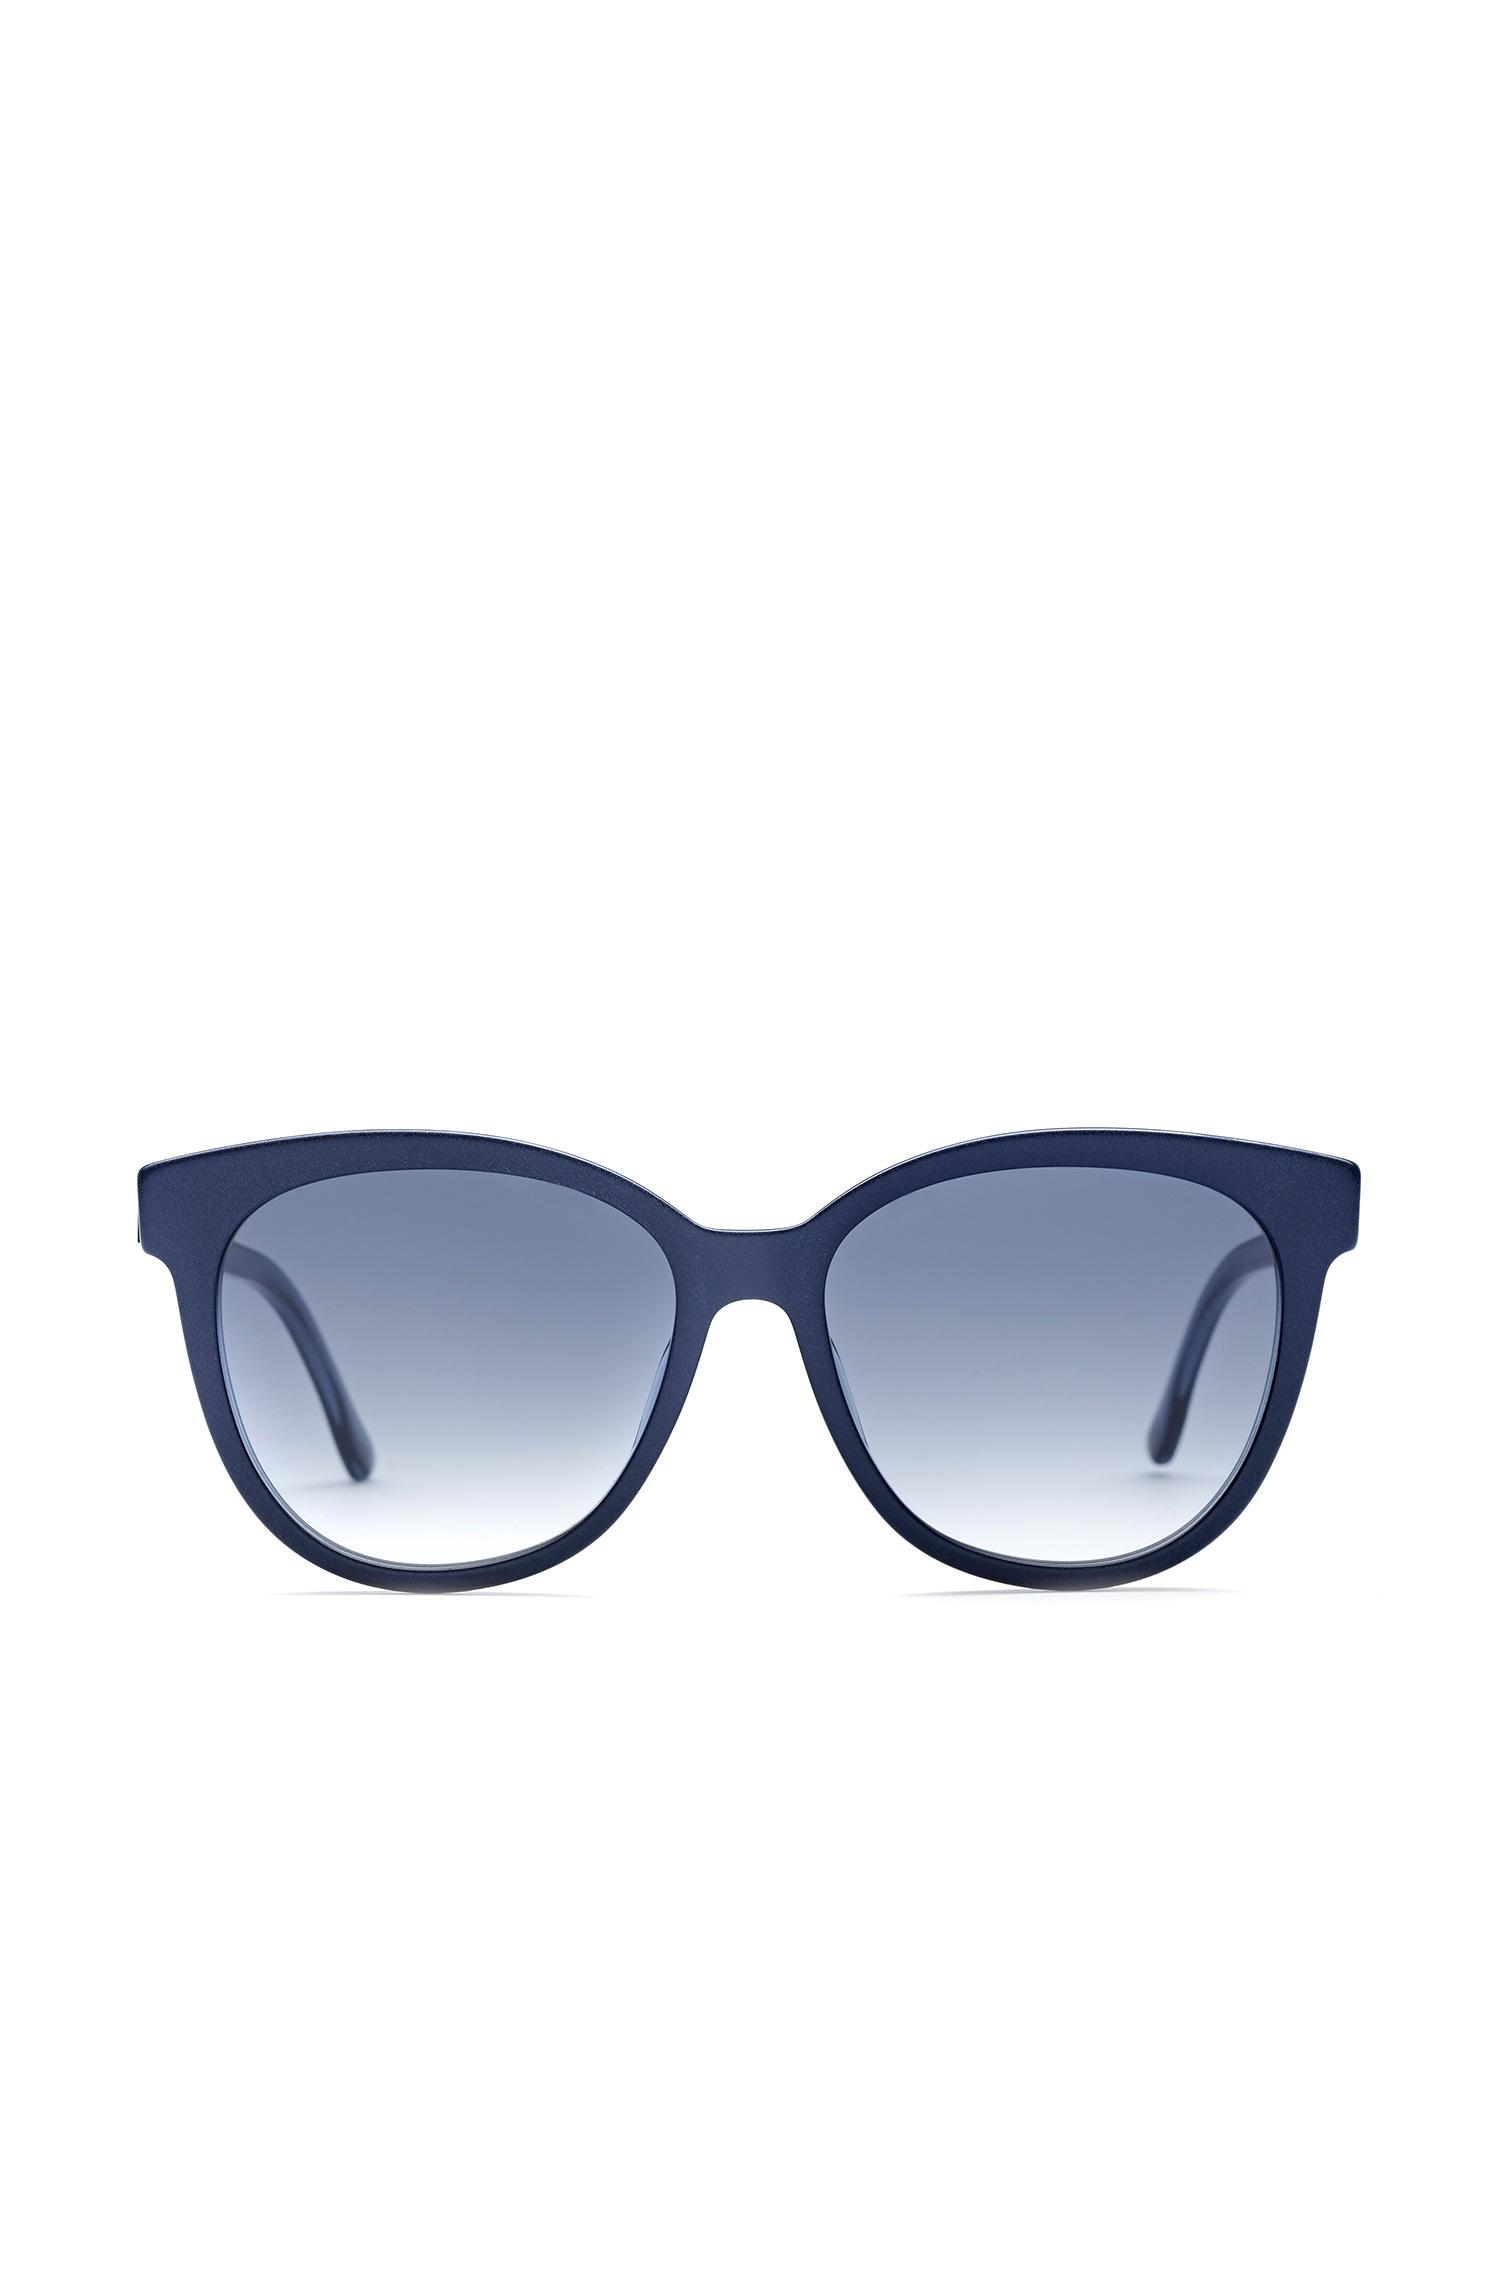 Sunglasses with fully-rimmed frames and transparent temples: BOSS 0849/S BOSS HqOuwk